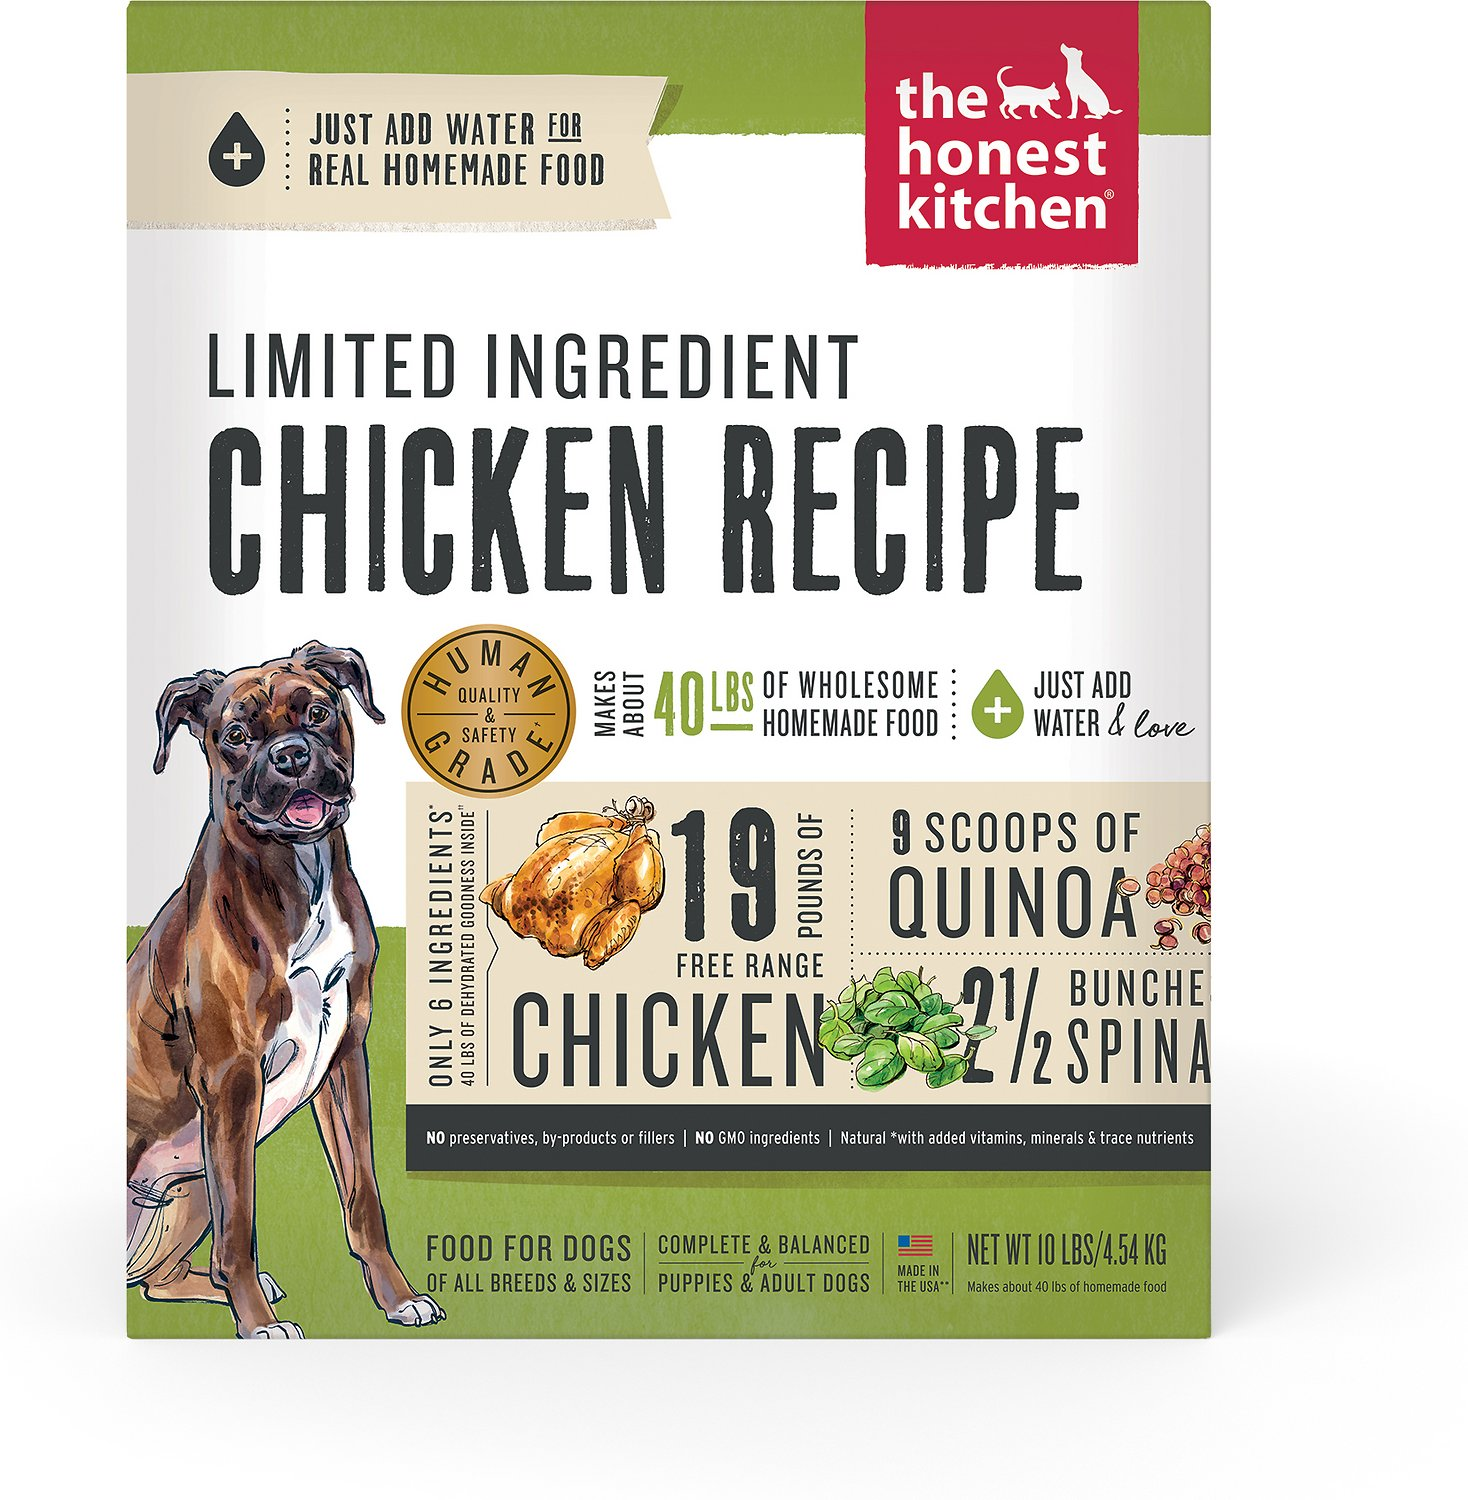 honest kitchen dog food reviews ikea cabinets the limited ingredient diet chicken recipe